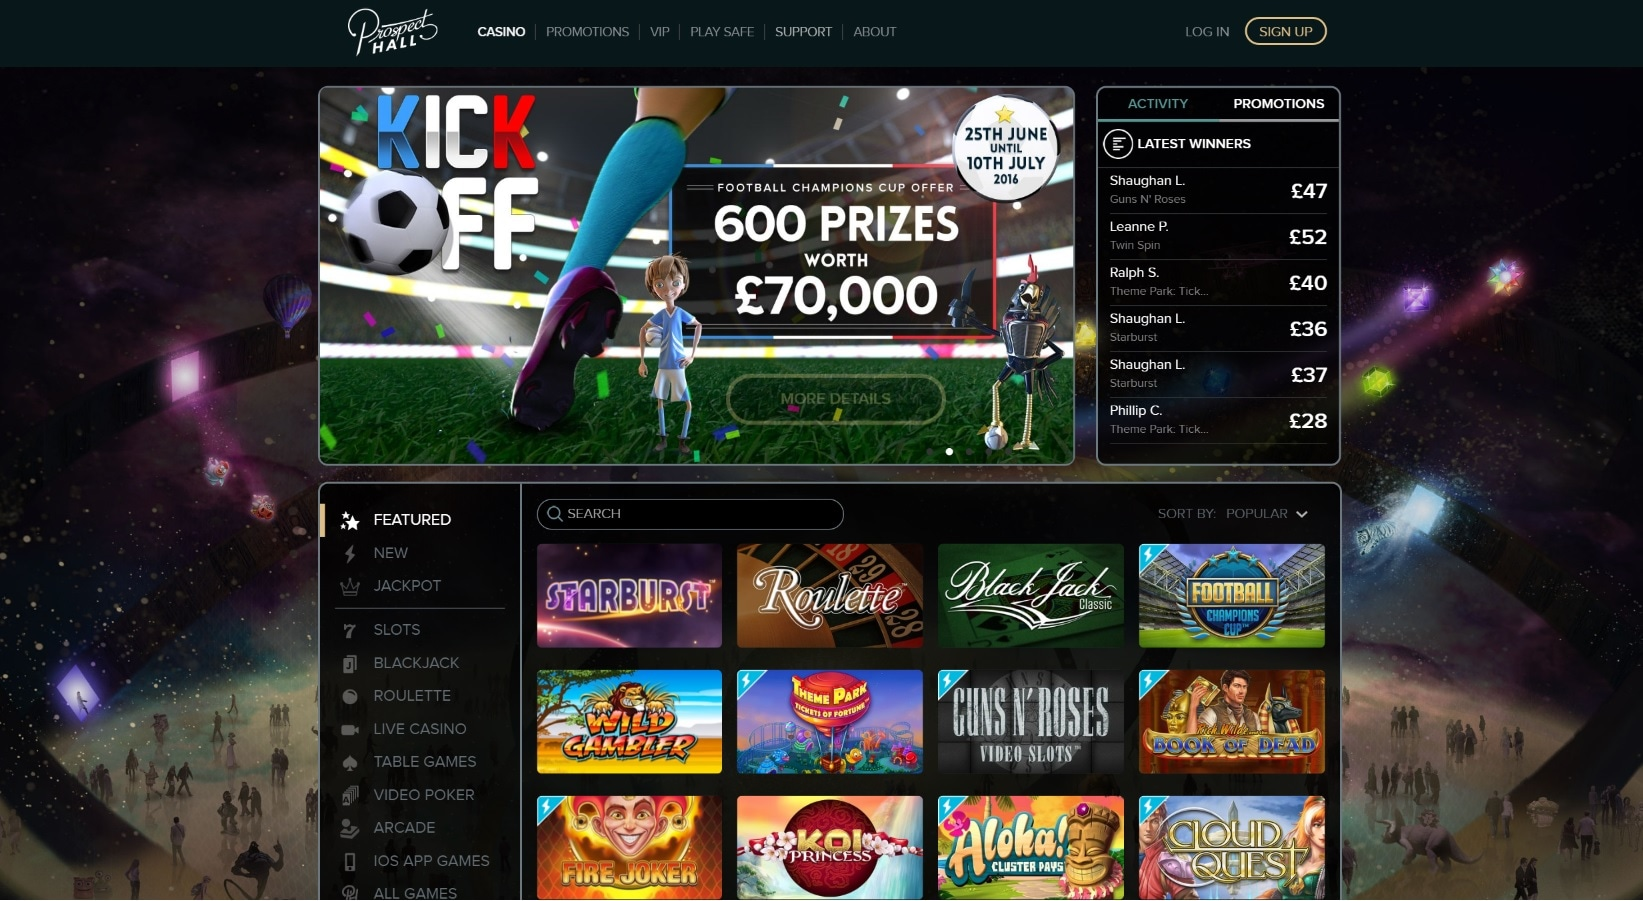 paypal casino site prospect hall overview